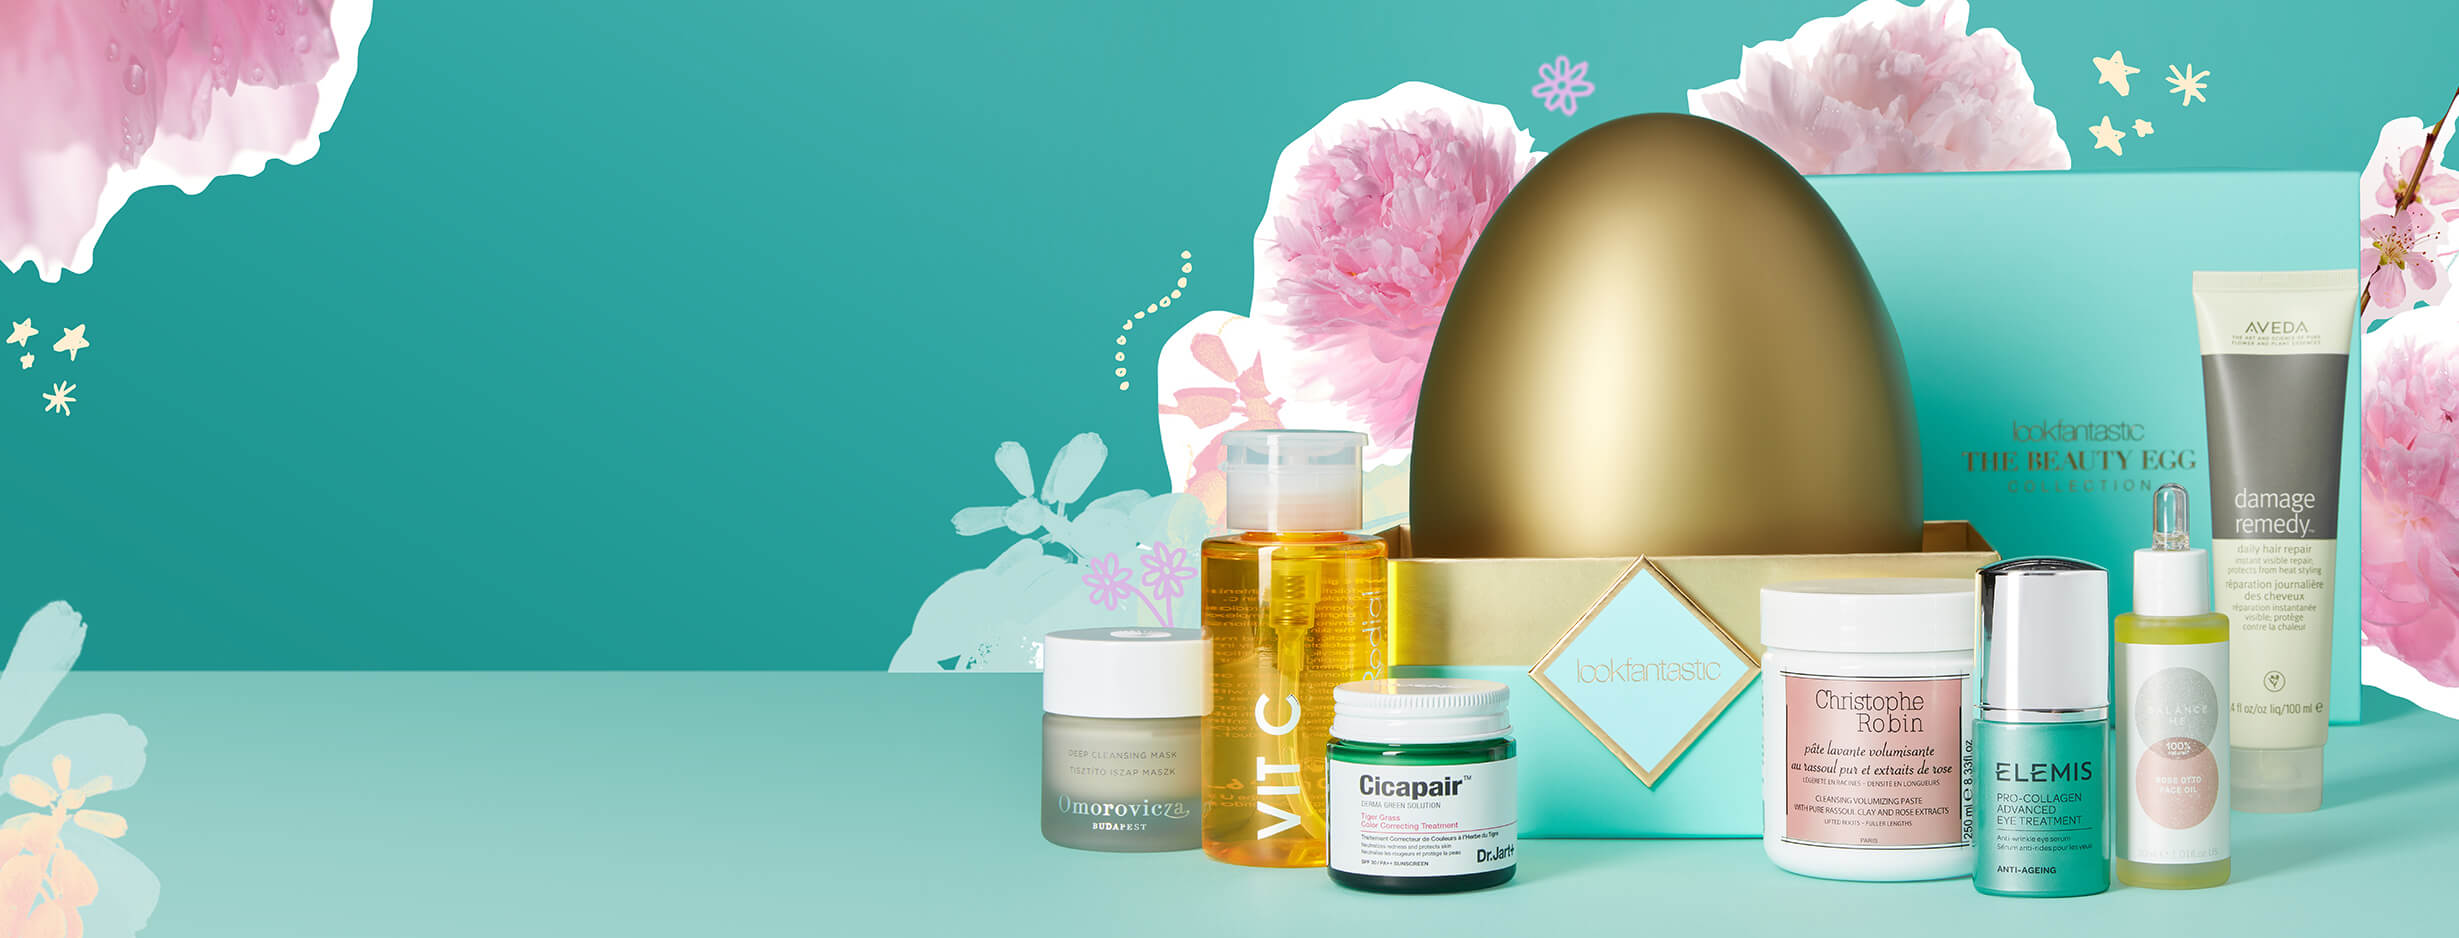 lookfantastic Beauty Egg collection